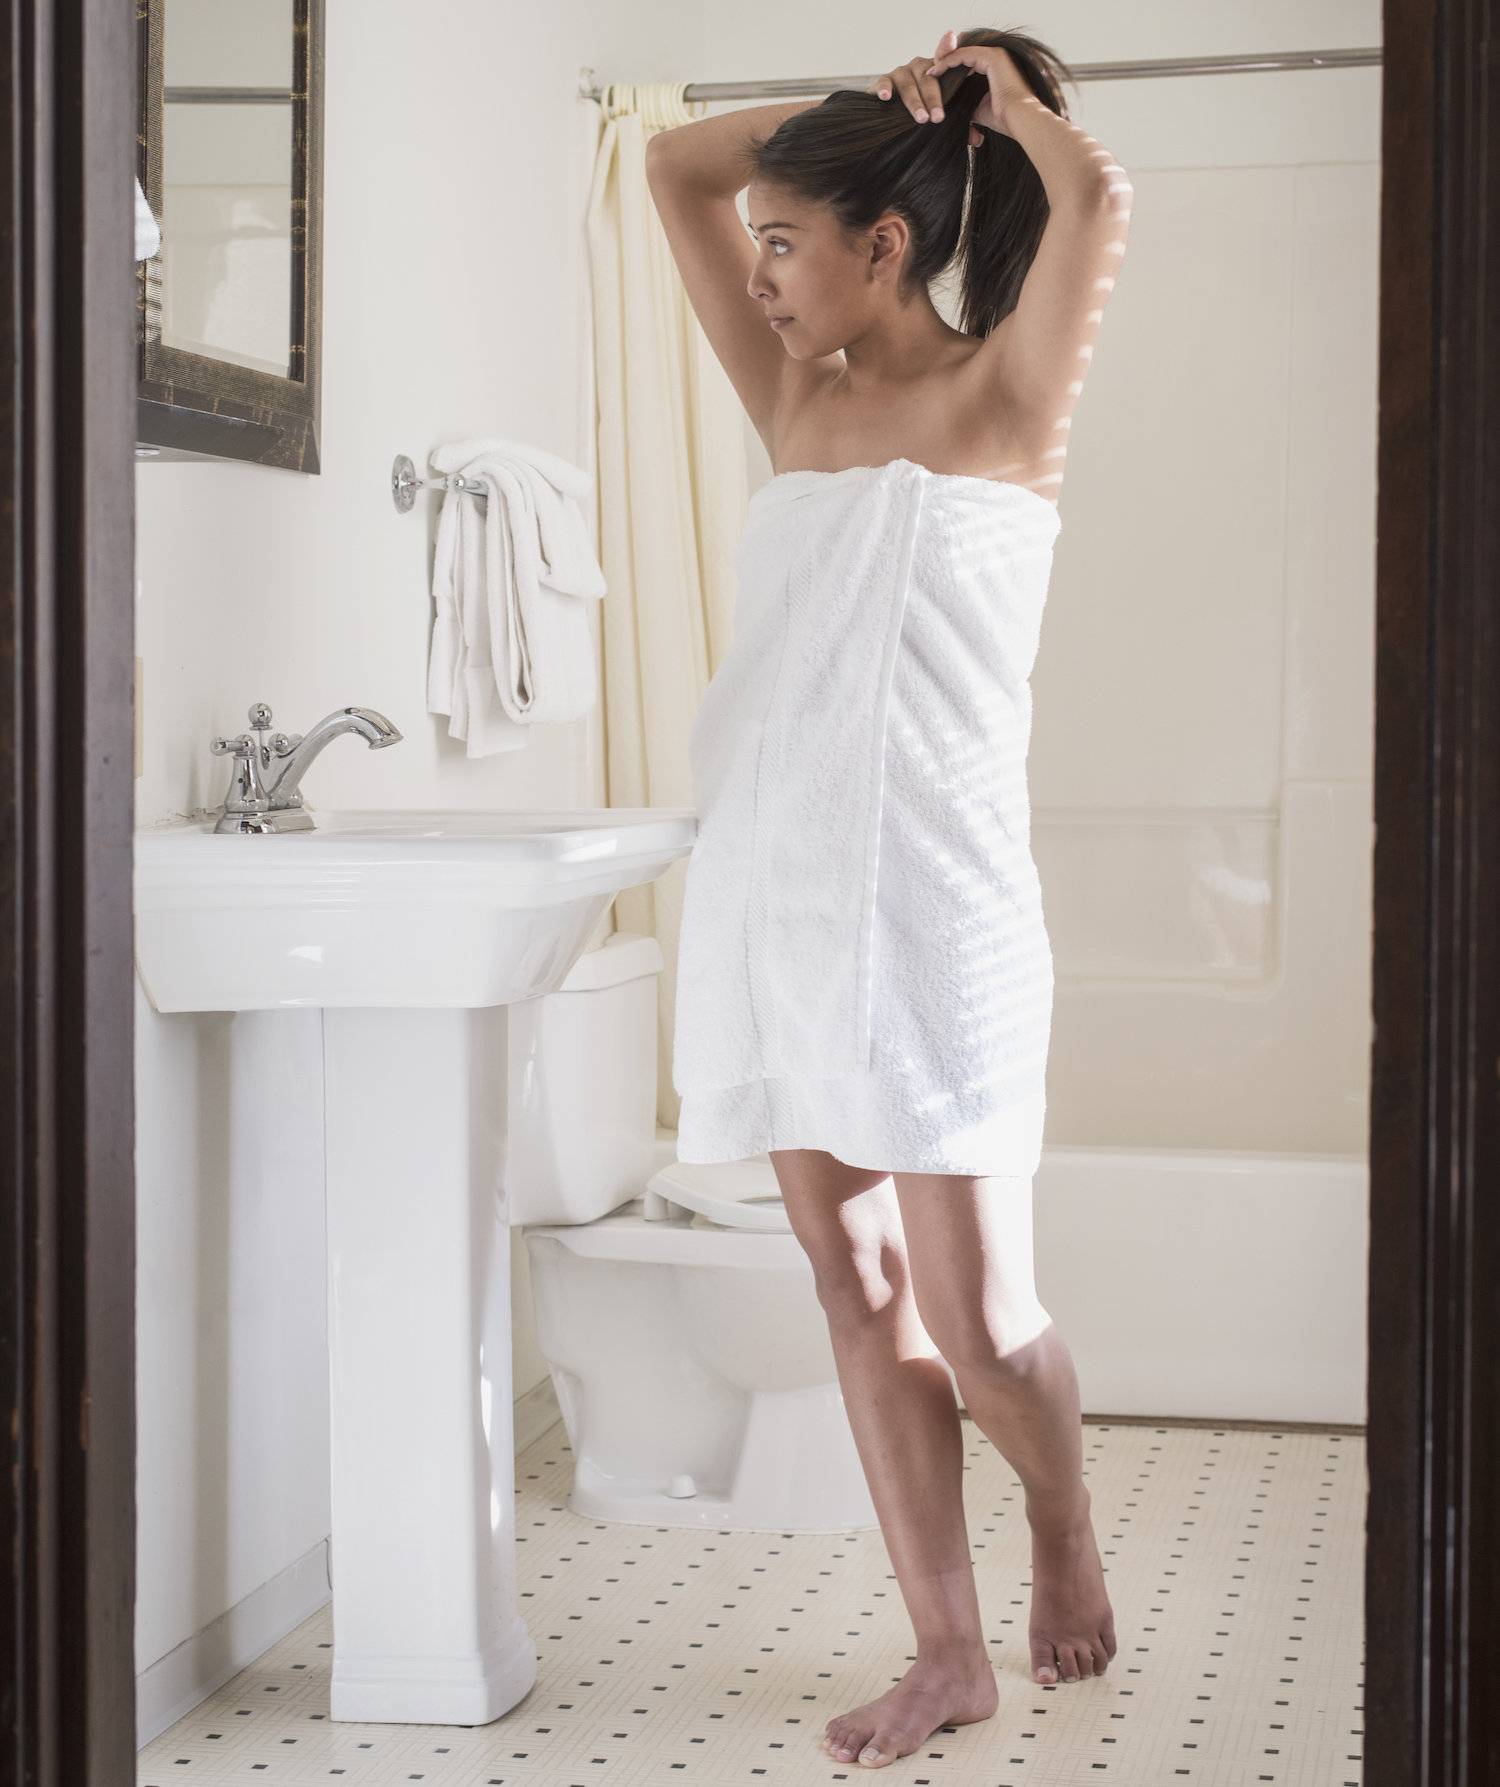 Why You Should Never Use Lotion After You Shower